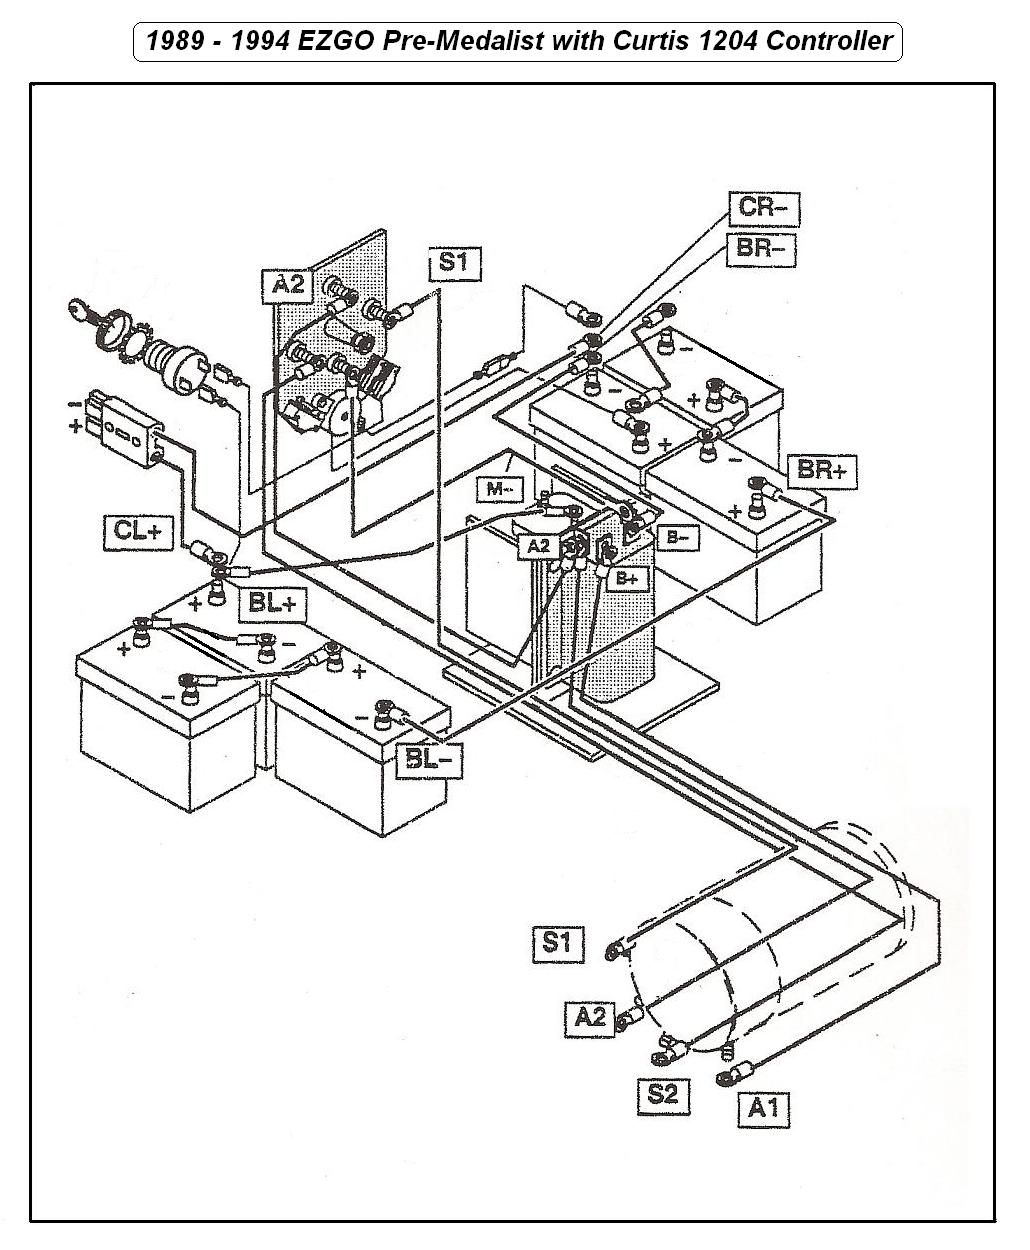 A89_94EZ_Wiring ezgo wiring diagram ezgo fuel pump \u2022 wiring diagrams j squared co ez go textron wiring diagram at alyssarenee.co